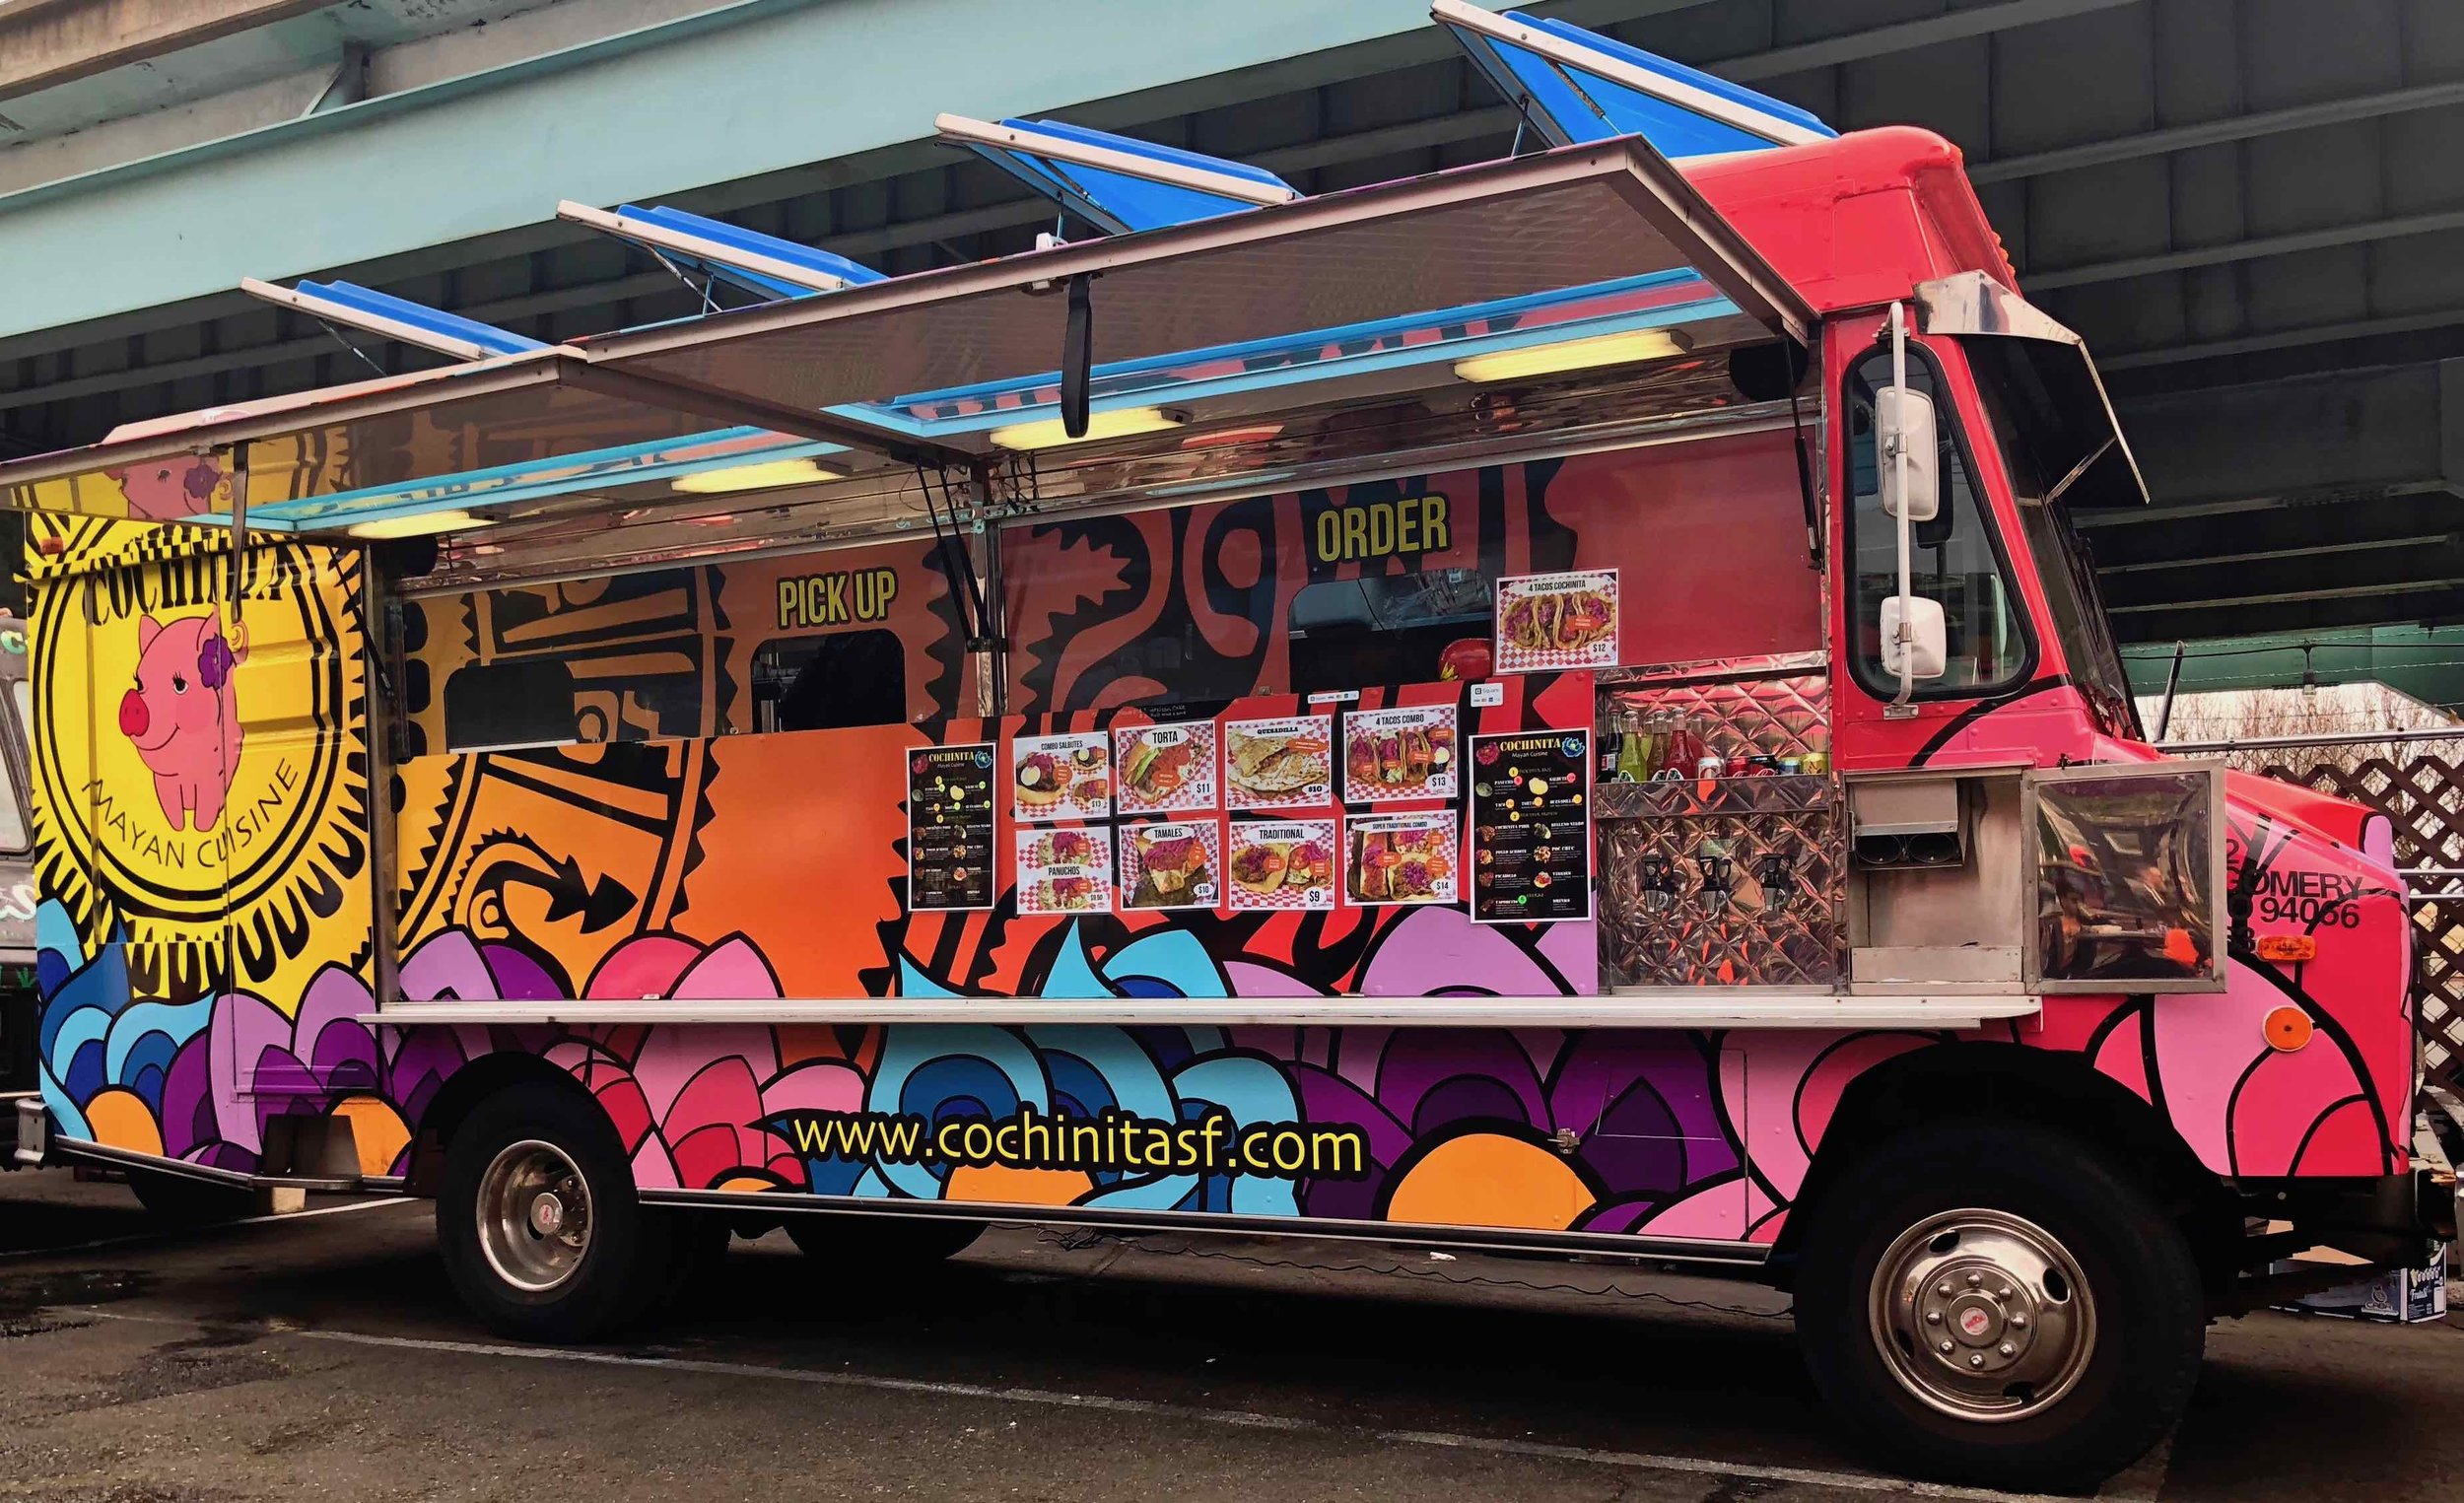 Cochinita food truck